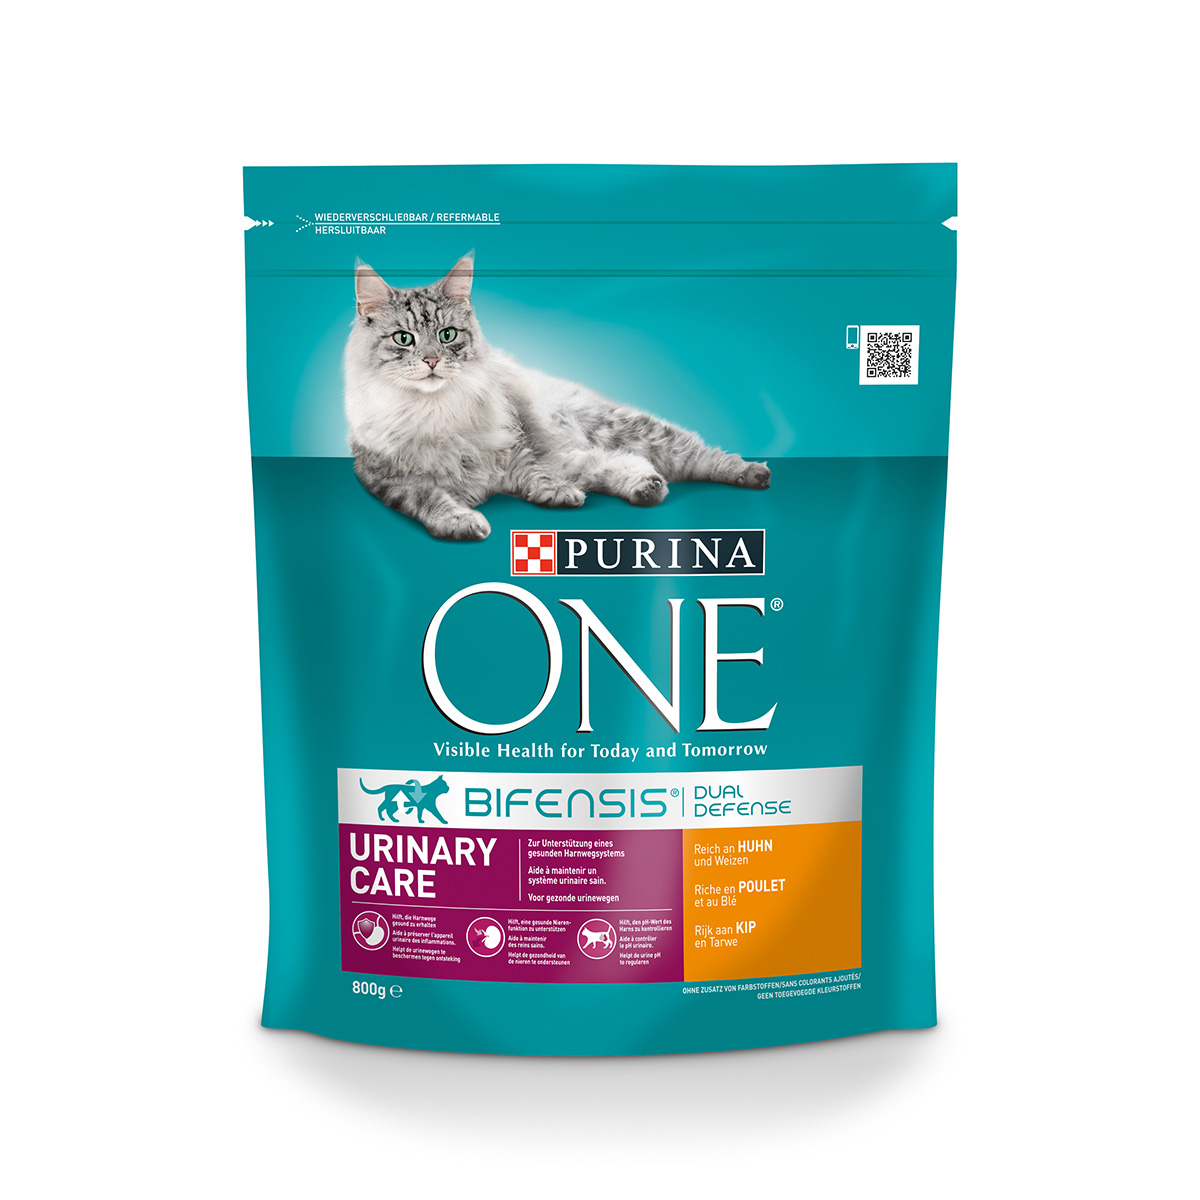 purina one trockenfutter coupon